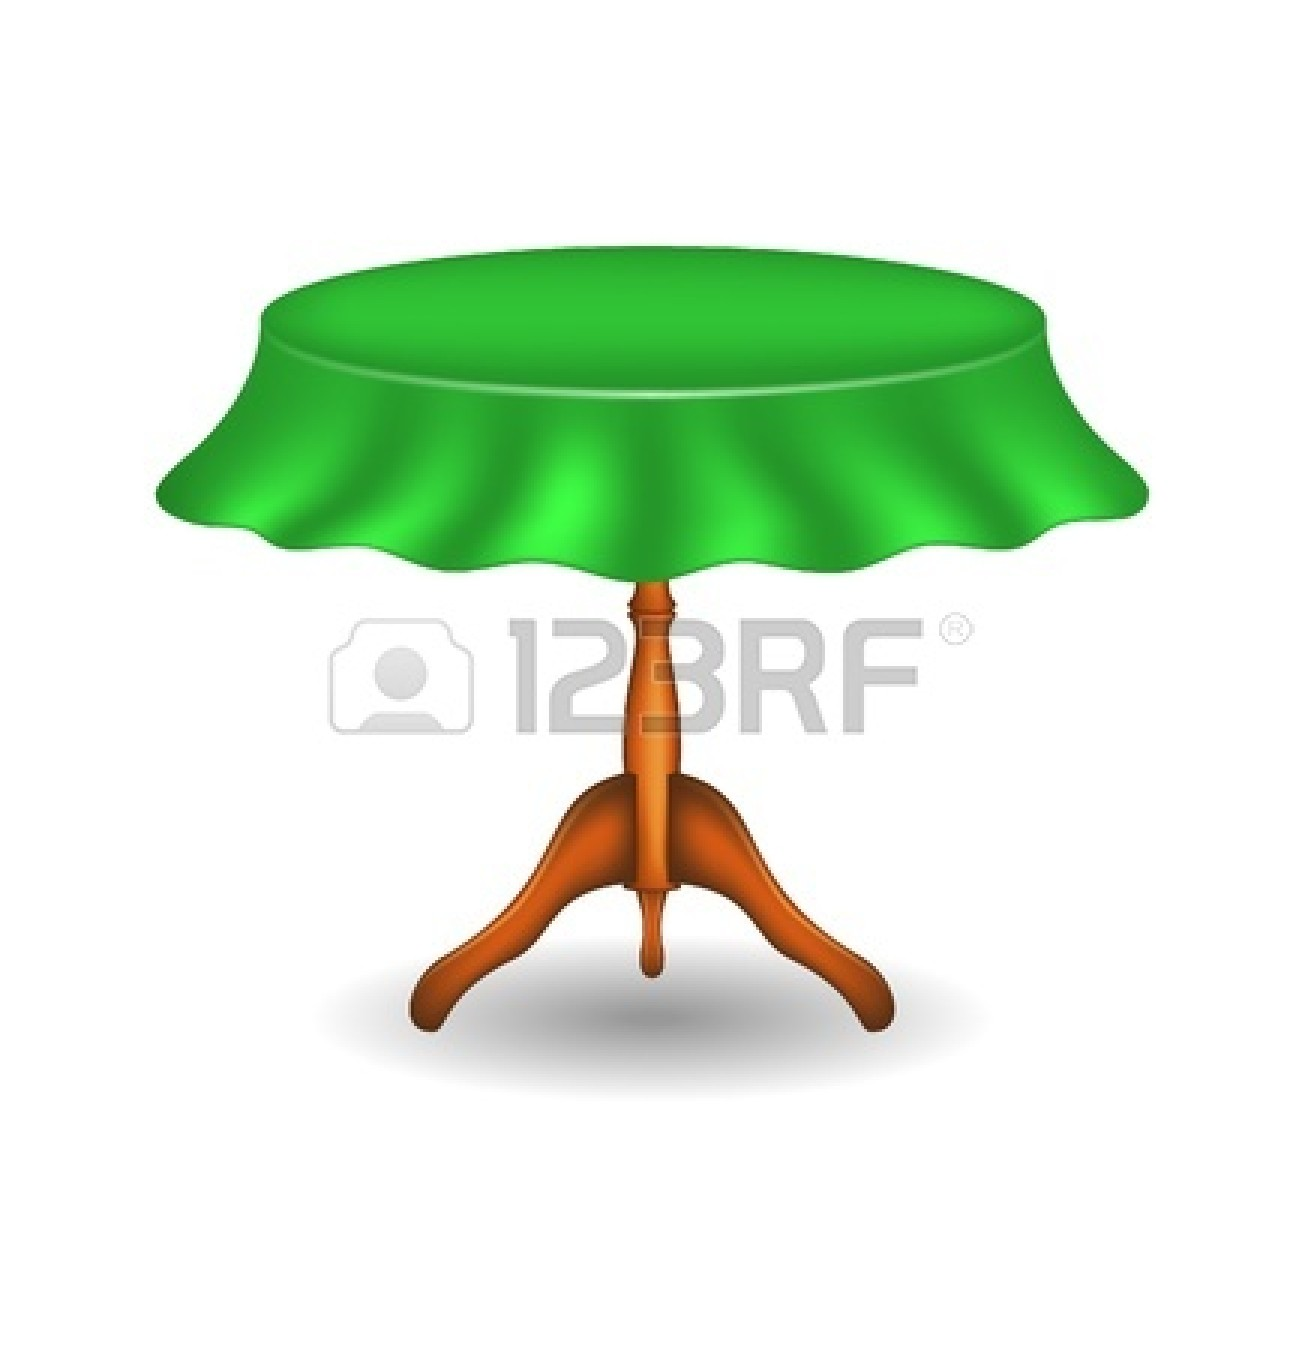 round table clipart. round dinner table clip art clipart .